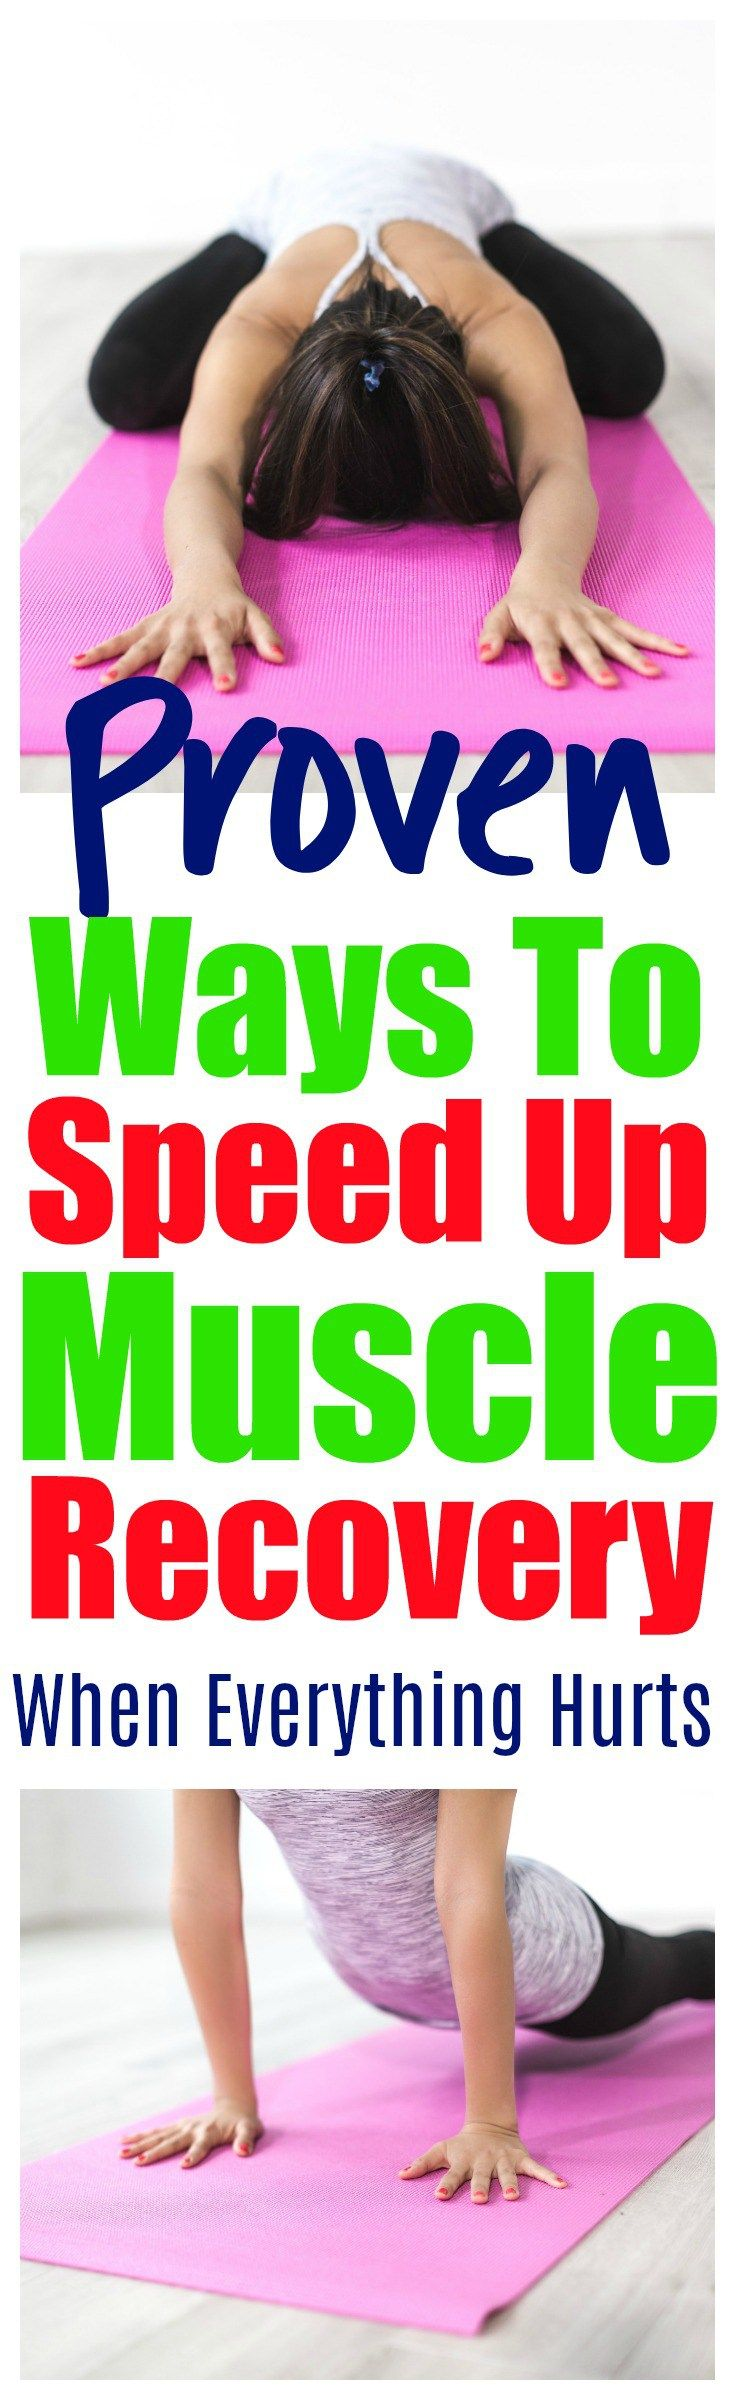 Proven Ways To Speed Up Muscle Soreness Recovery | Two Boys and a Mommy